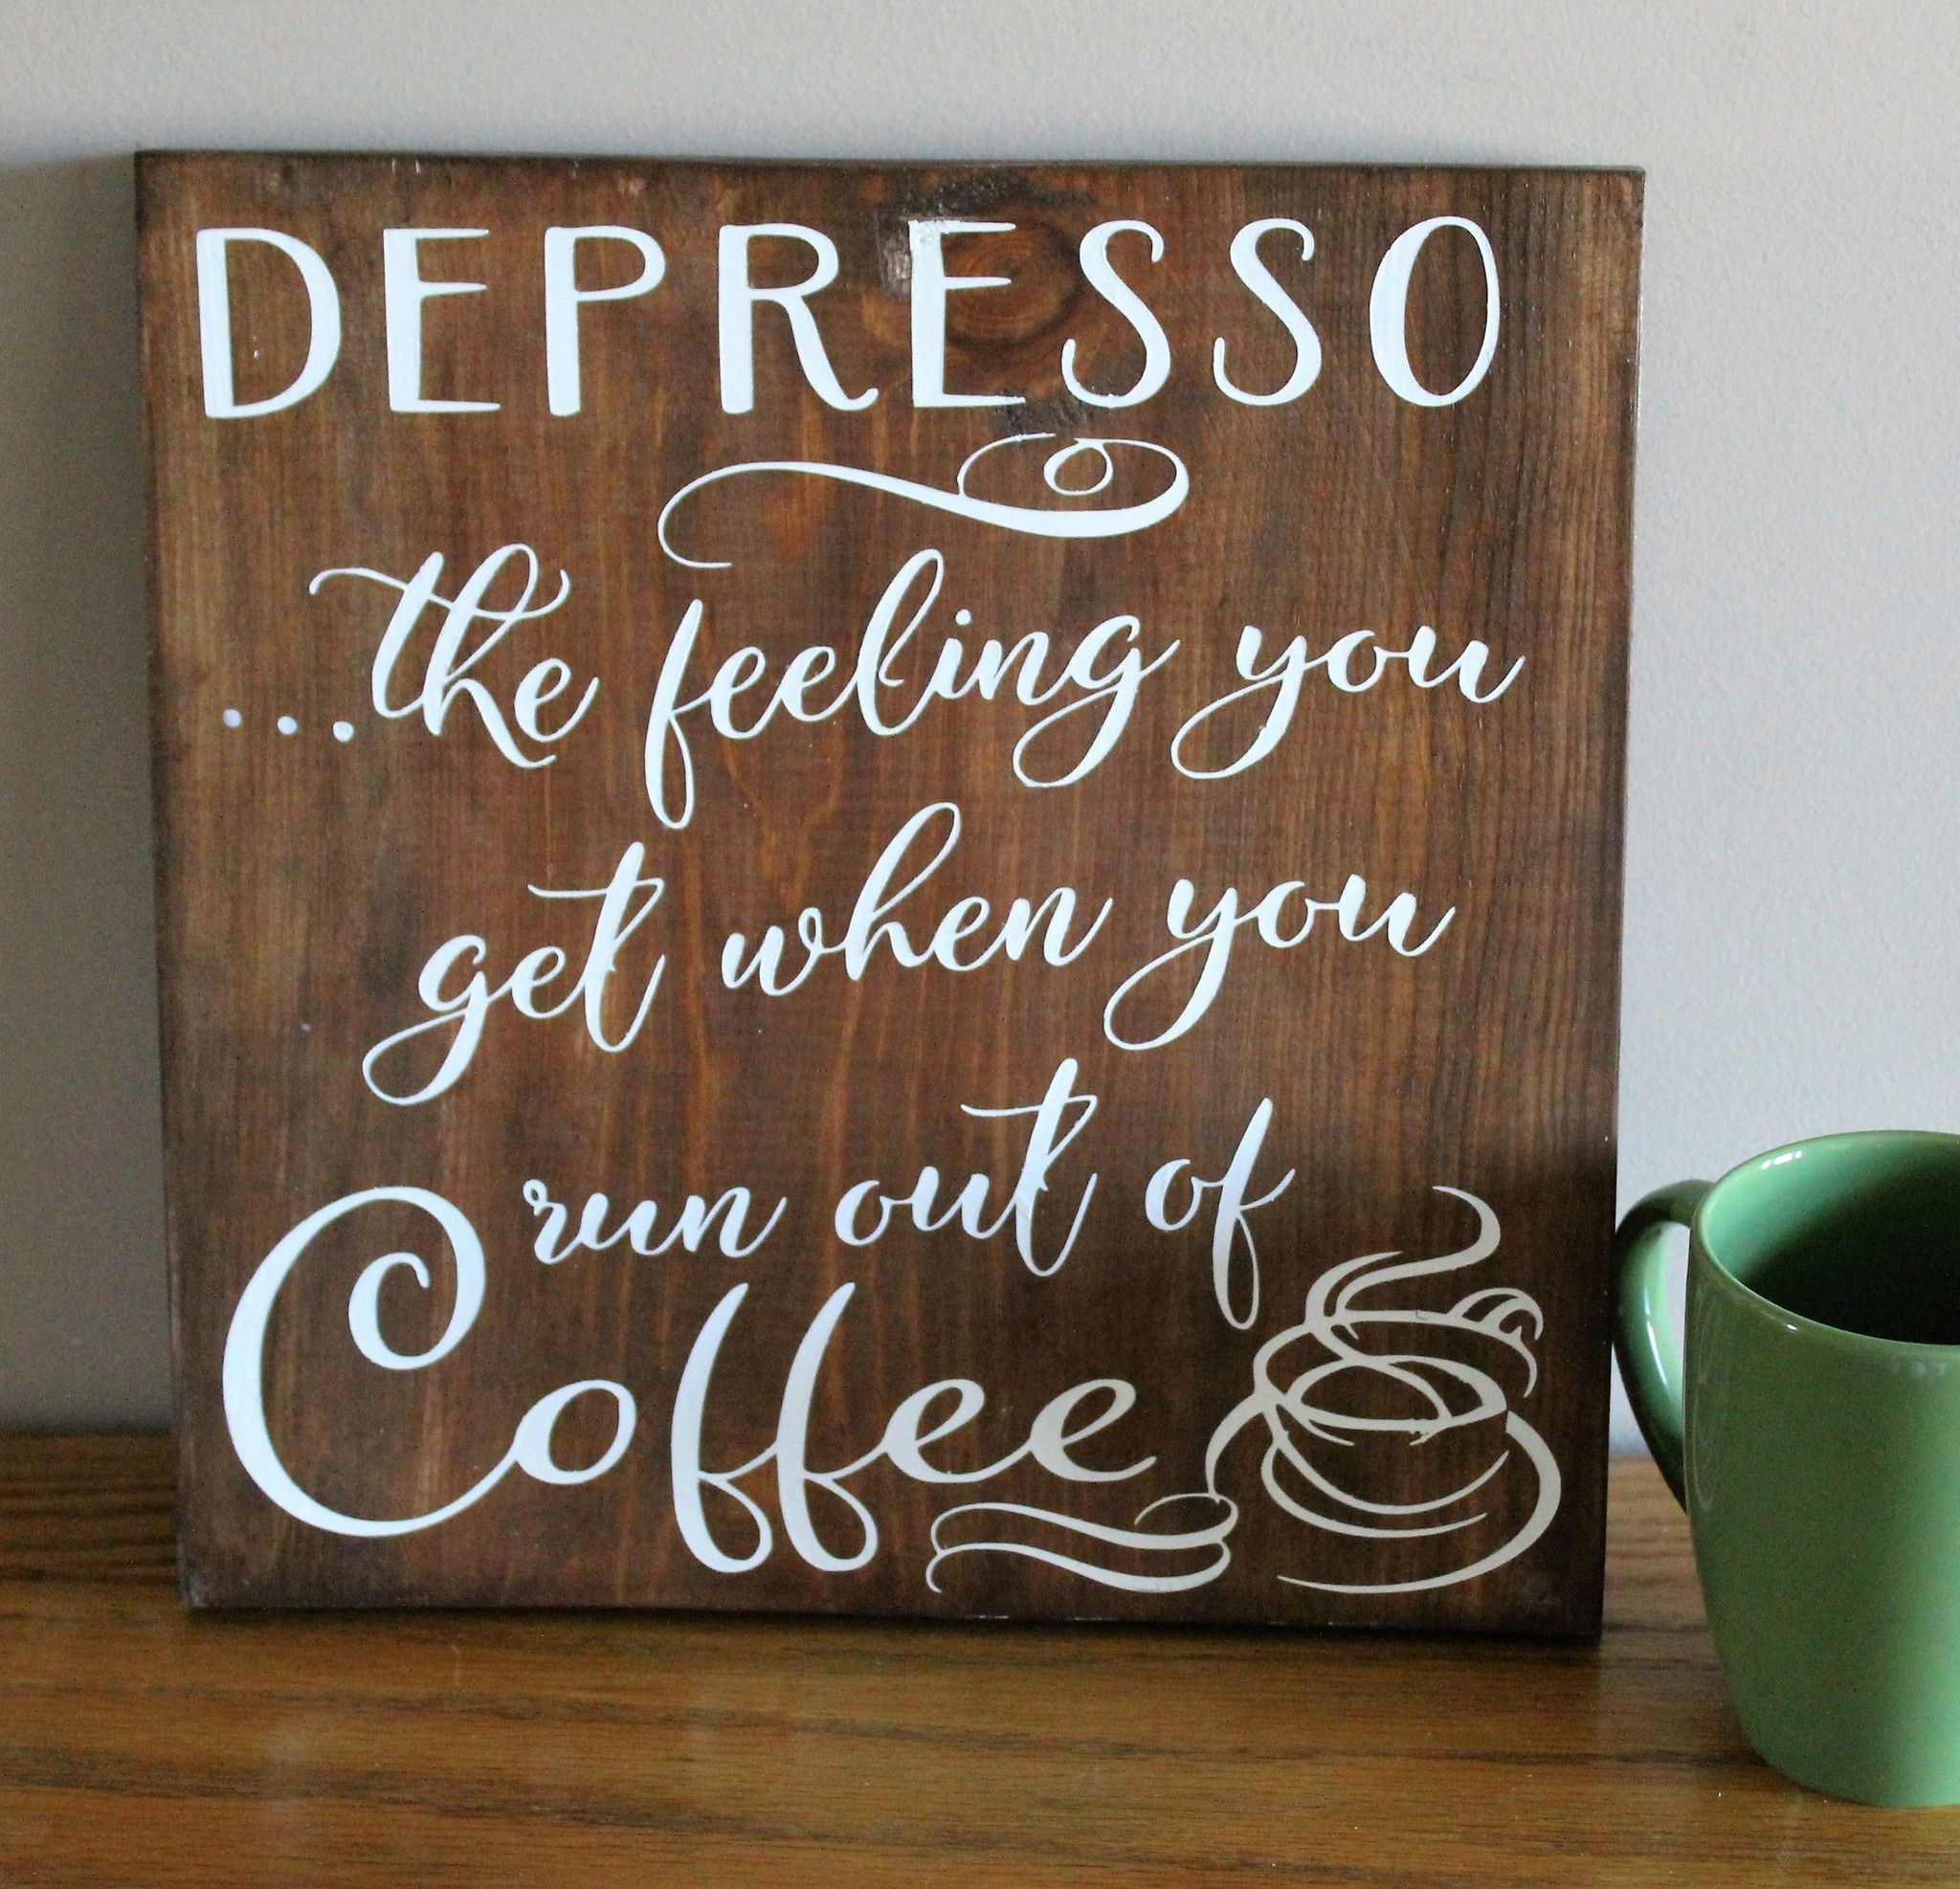 Depresso The Feeling You Get When You Run Out Of Coffee Wood Sign ...